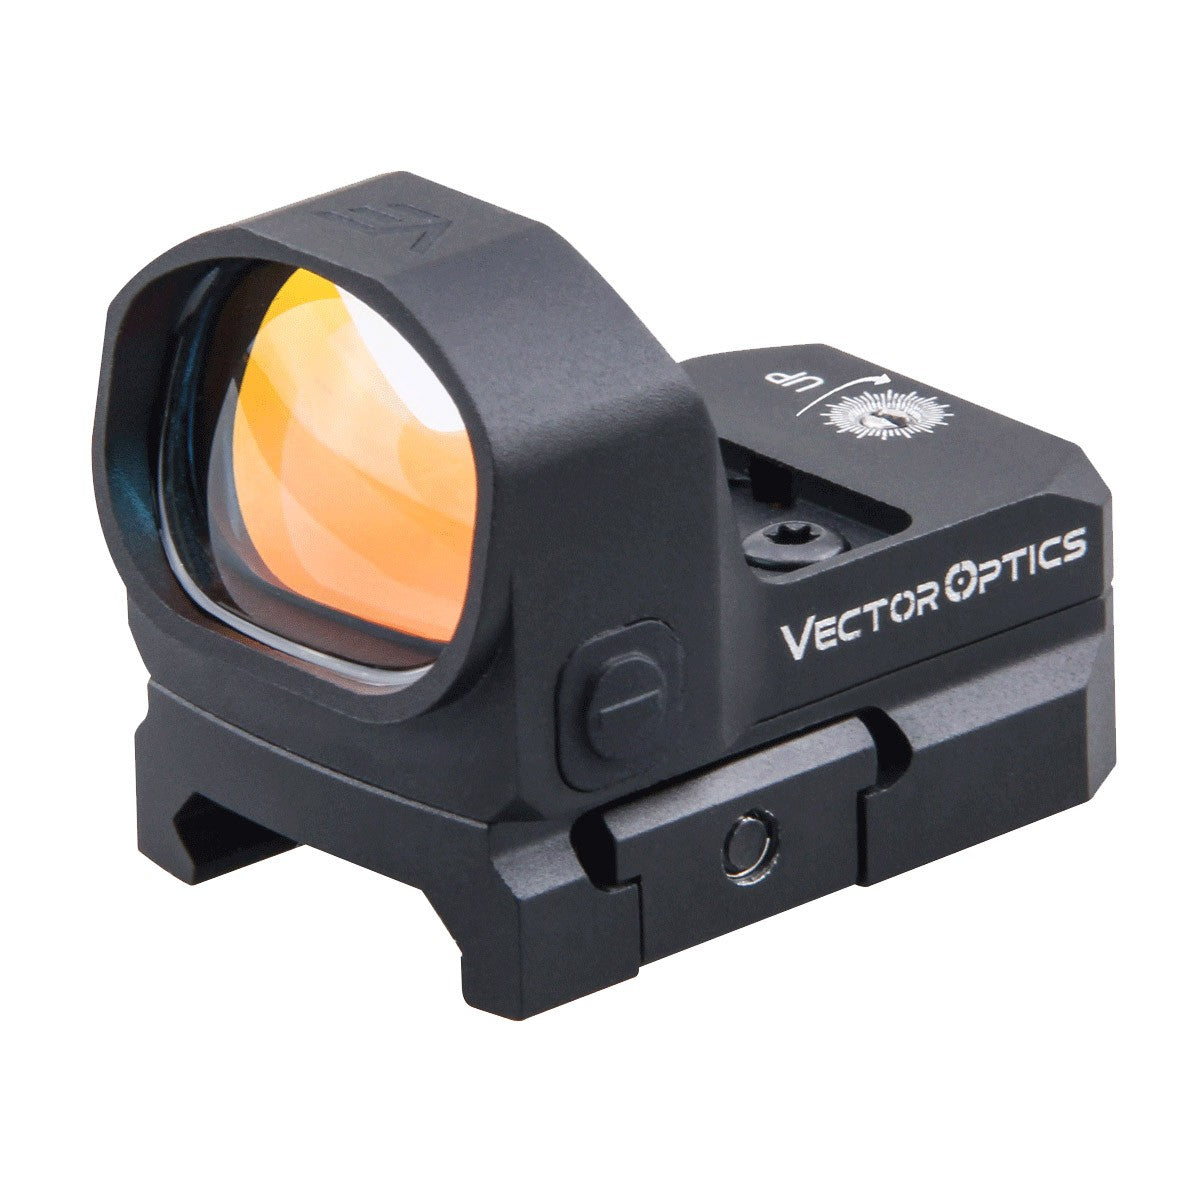 Vector Optics - Frenzy-X 1x20x28 Red Dot Sight